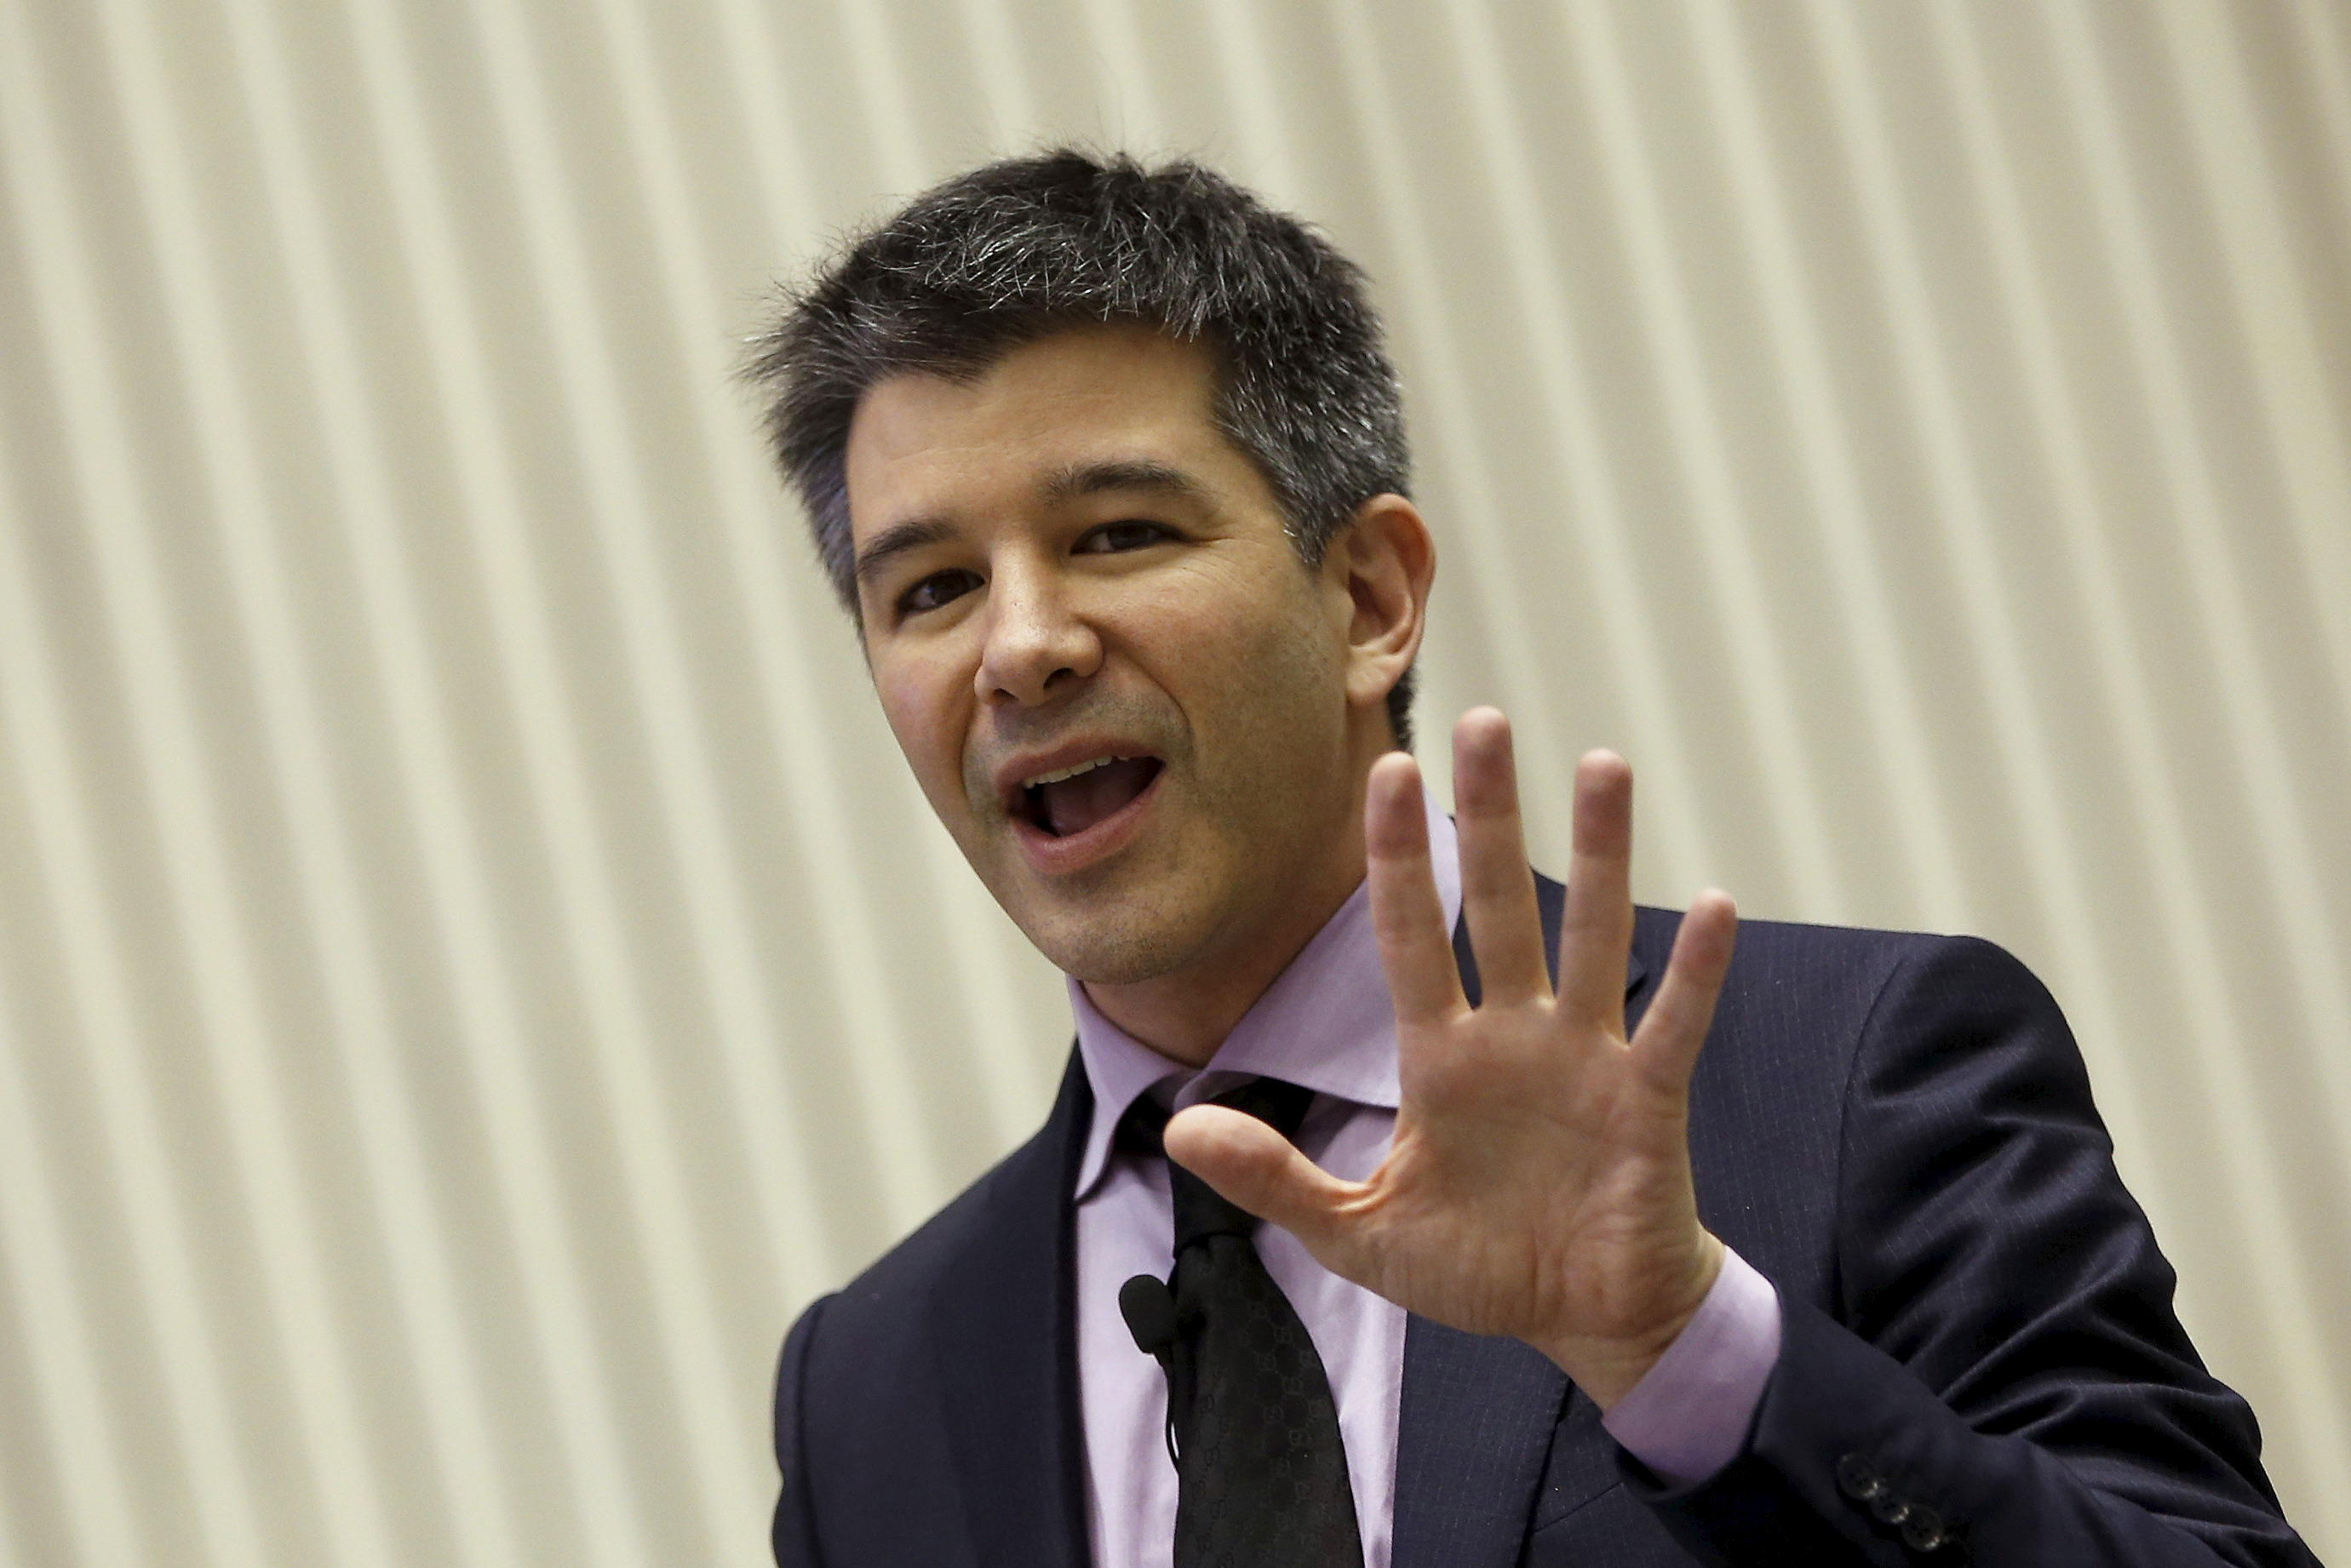 travis kalanick quits as uber ceo